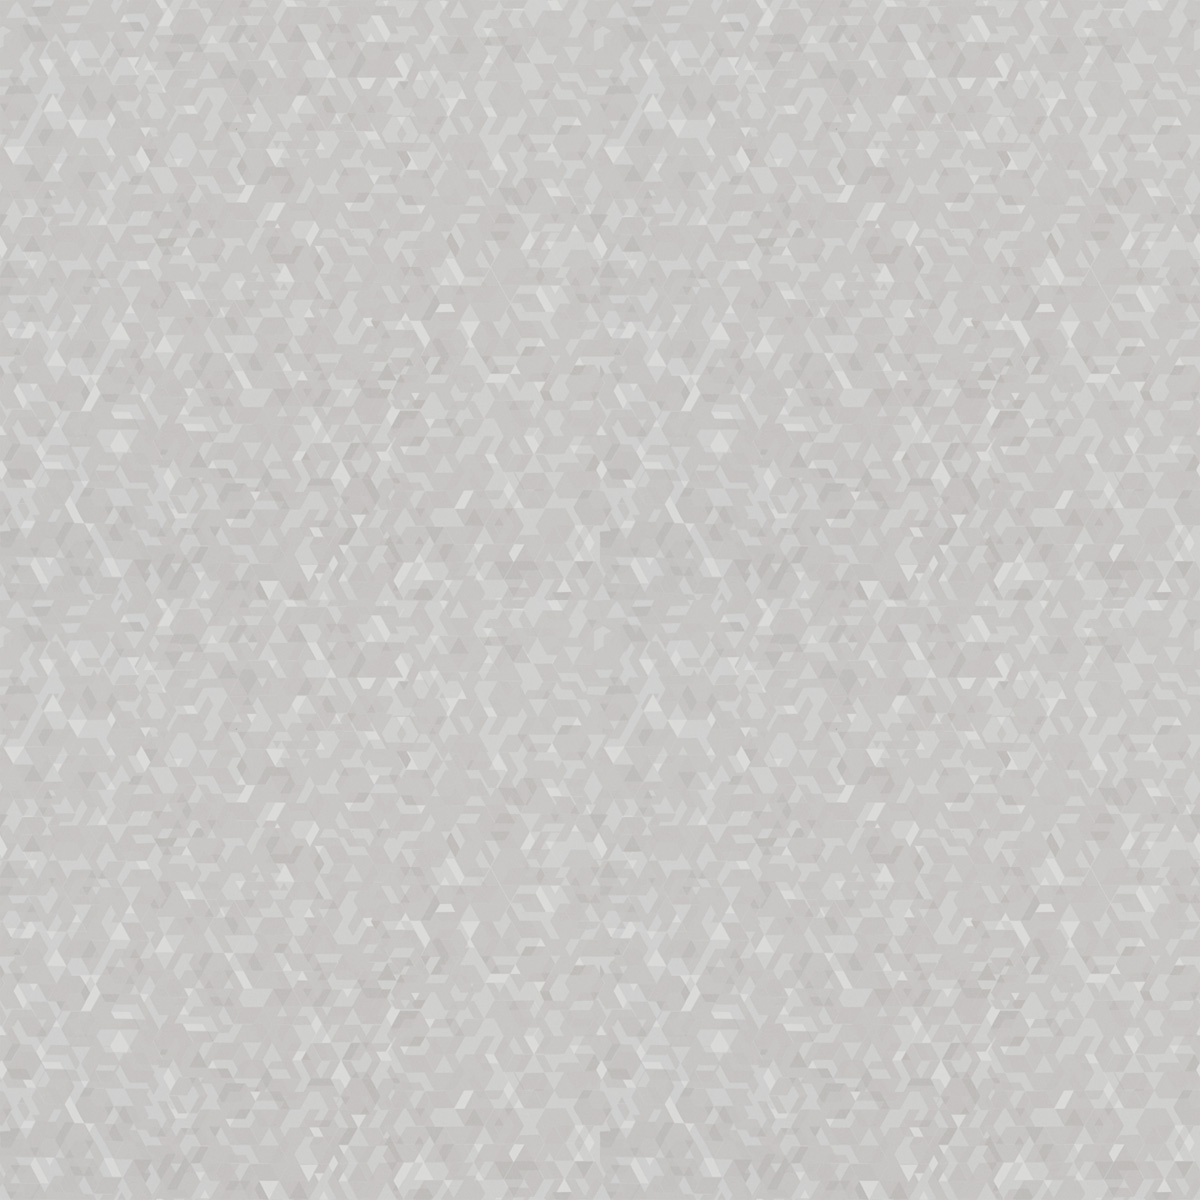 6473 Folkstone Hex - Formica